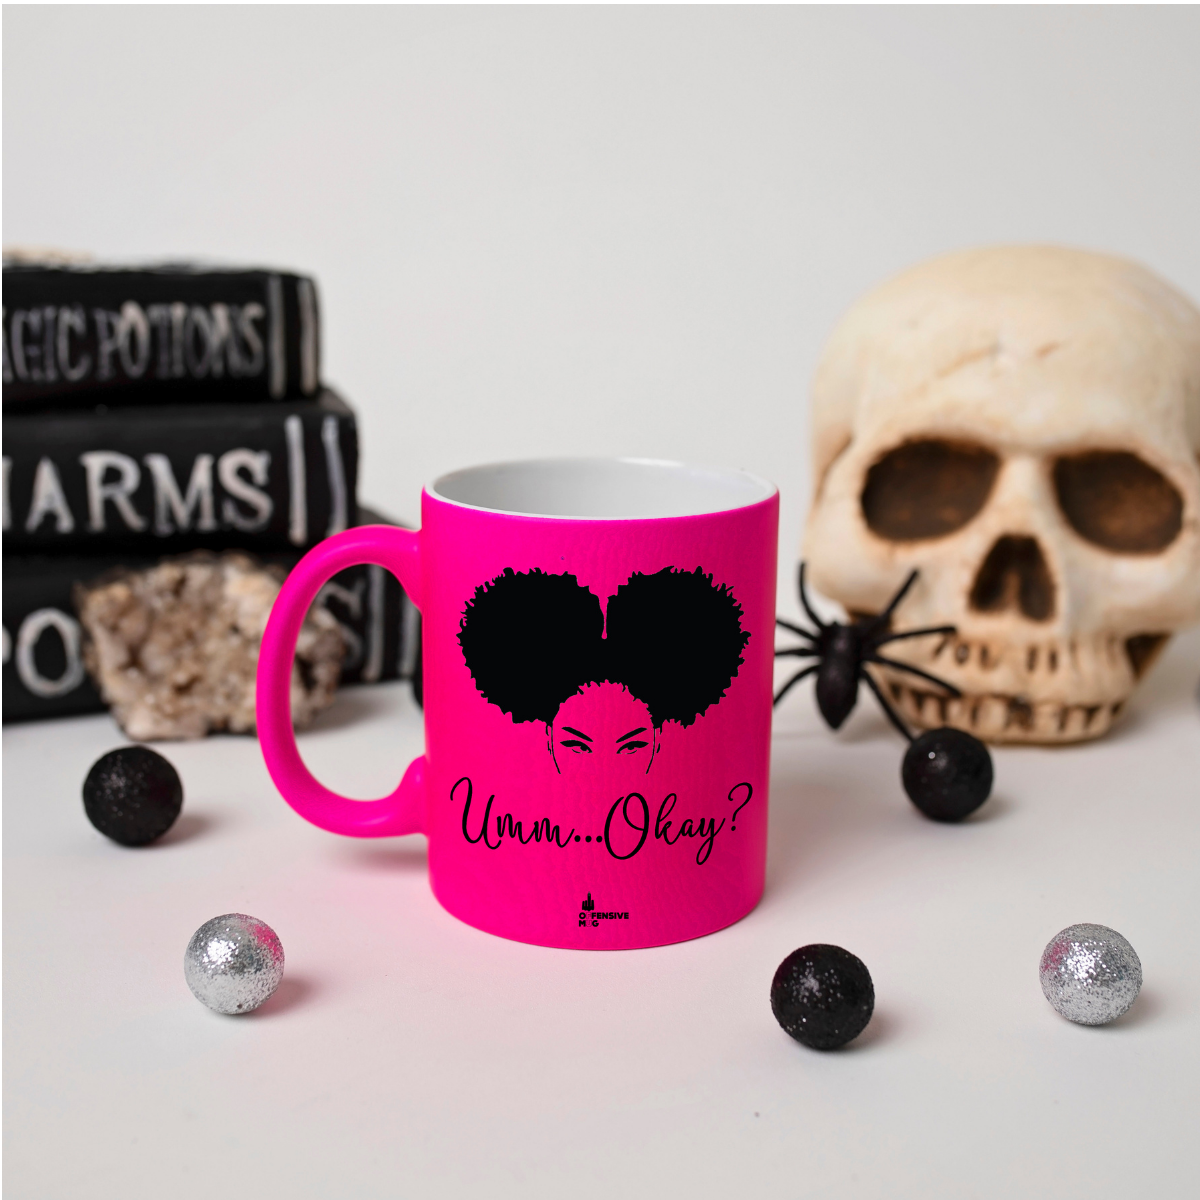 Toni Color Mug - Offensive Mug